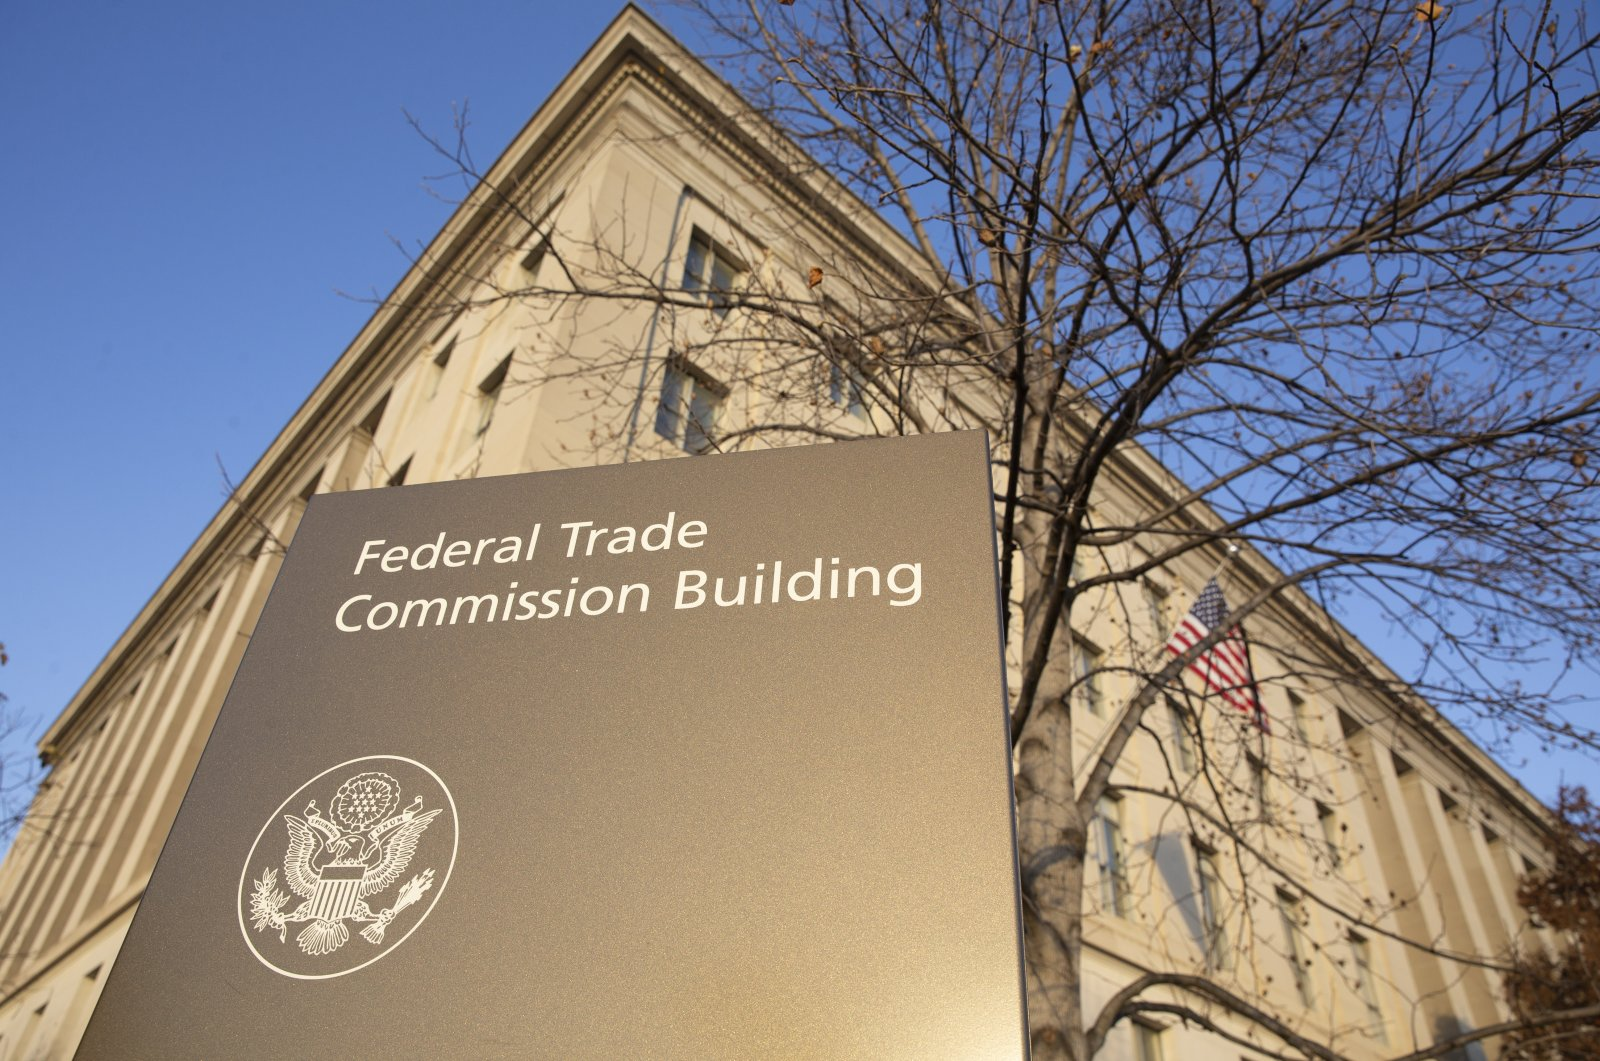 The Federal Trade Commission (FTC) Building in Washington, DC, USA, 09 December 2020. The FTC and 46 states with Washington DC and Guam filed antitrust lawsuits against Facebook Inc., alleging illegal social network monopoly through anticompetitive conduct which could force the sale of Instagram and WhatsApp. (EPA Photo)